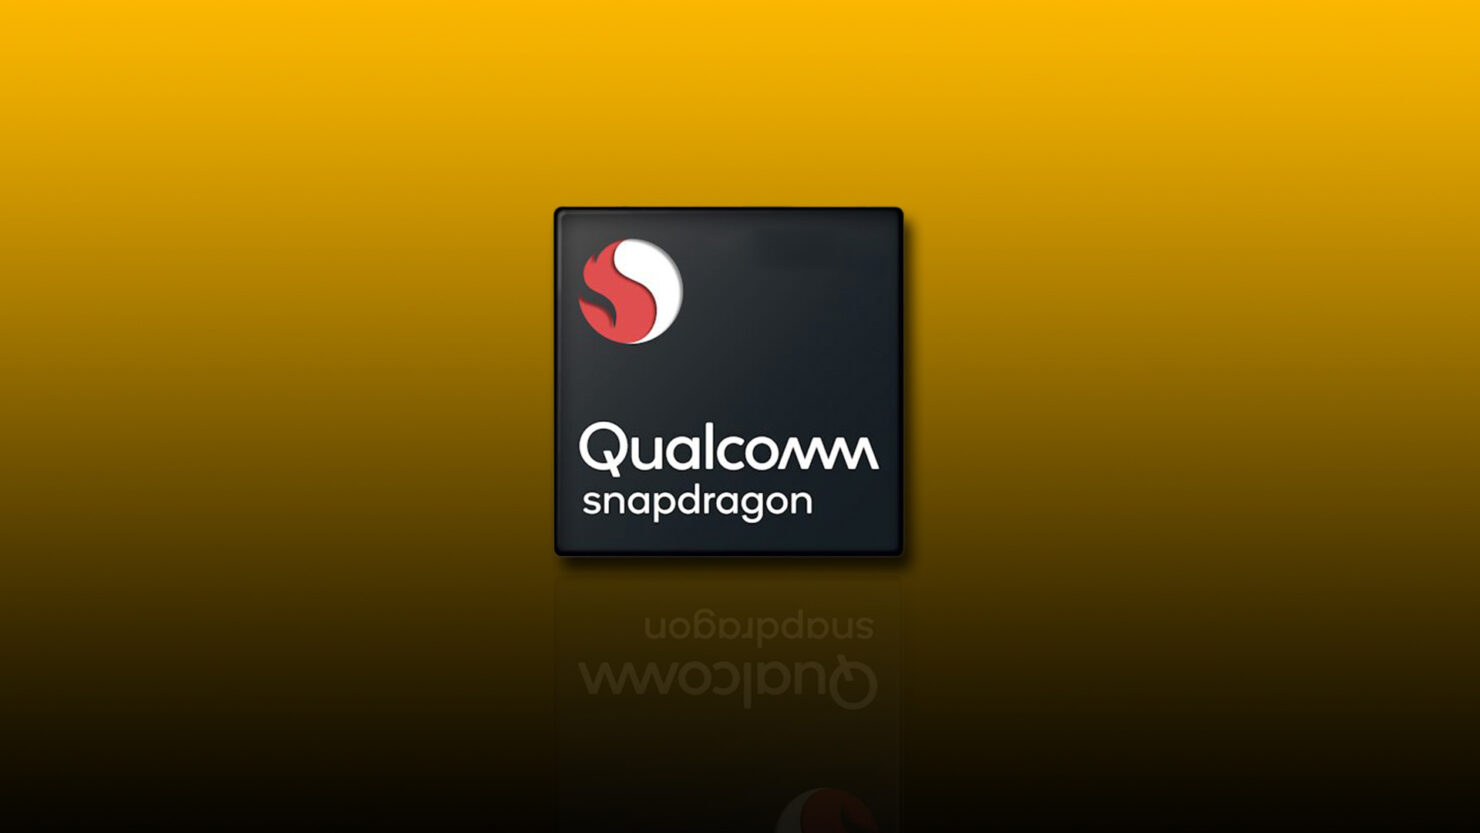 Qualcomm Snapdragon 875 Specs Allegedly Leaked - Integrated X60 5G Modem, Kryo 685 CPU, Newer Technologies & More